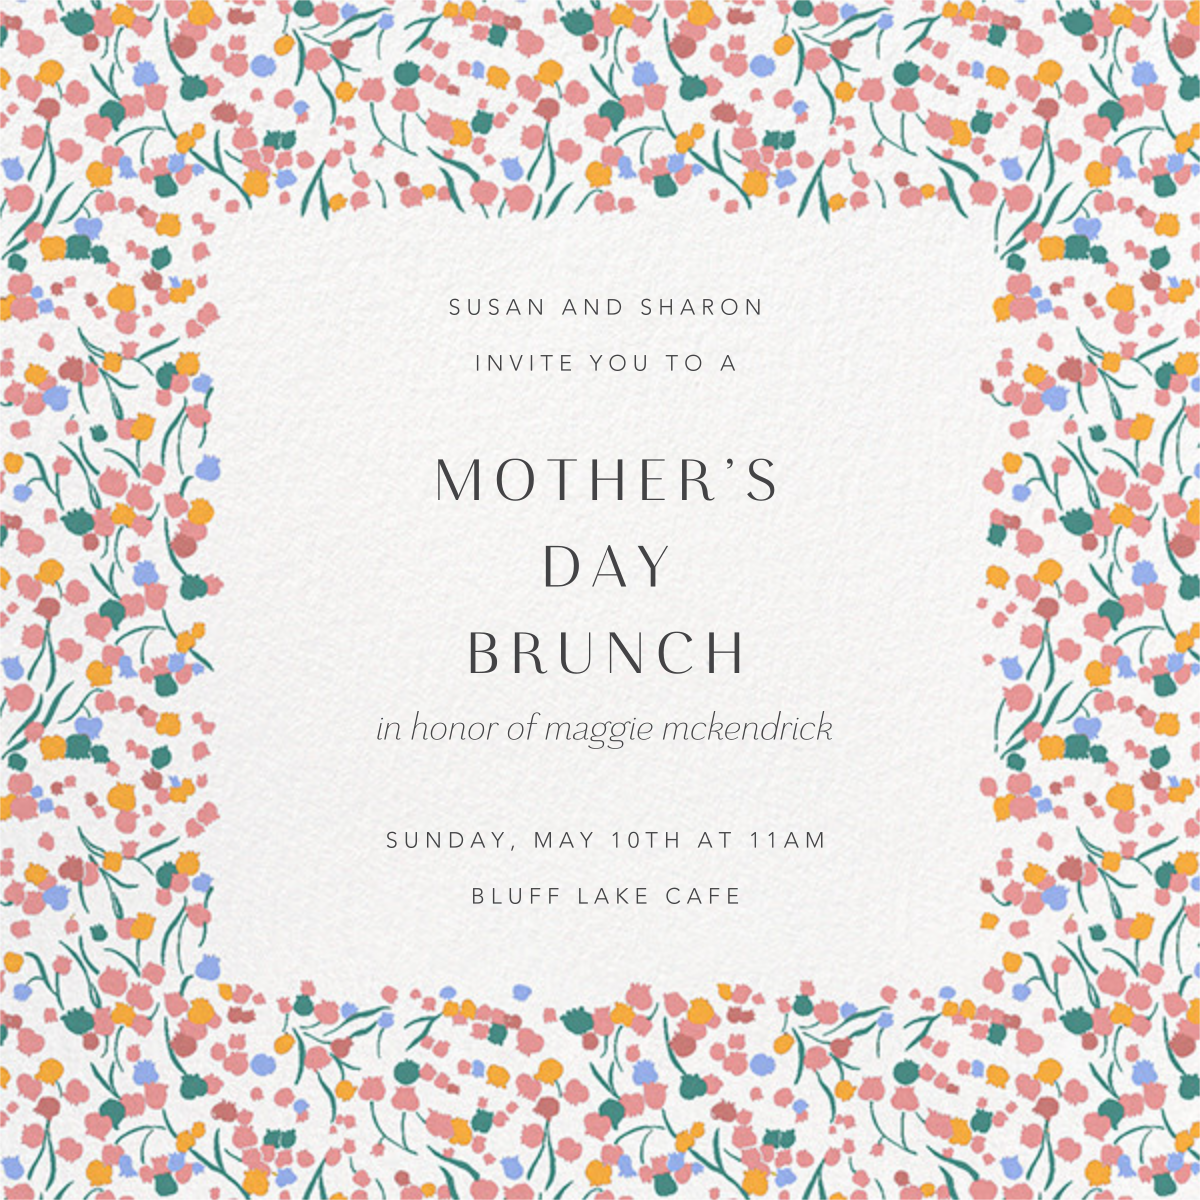 Tender Buttons - White - Anthropologie - Mother's Day